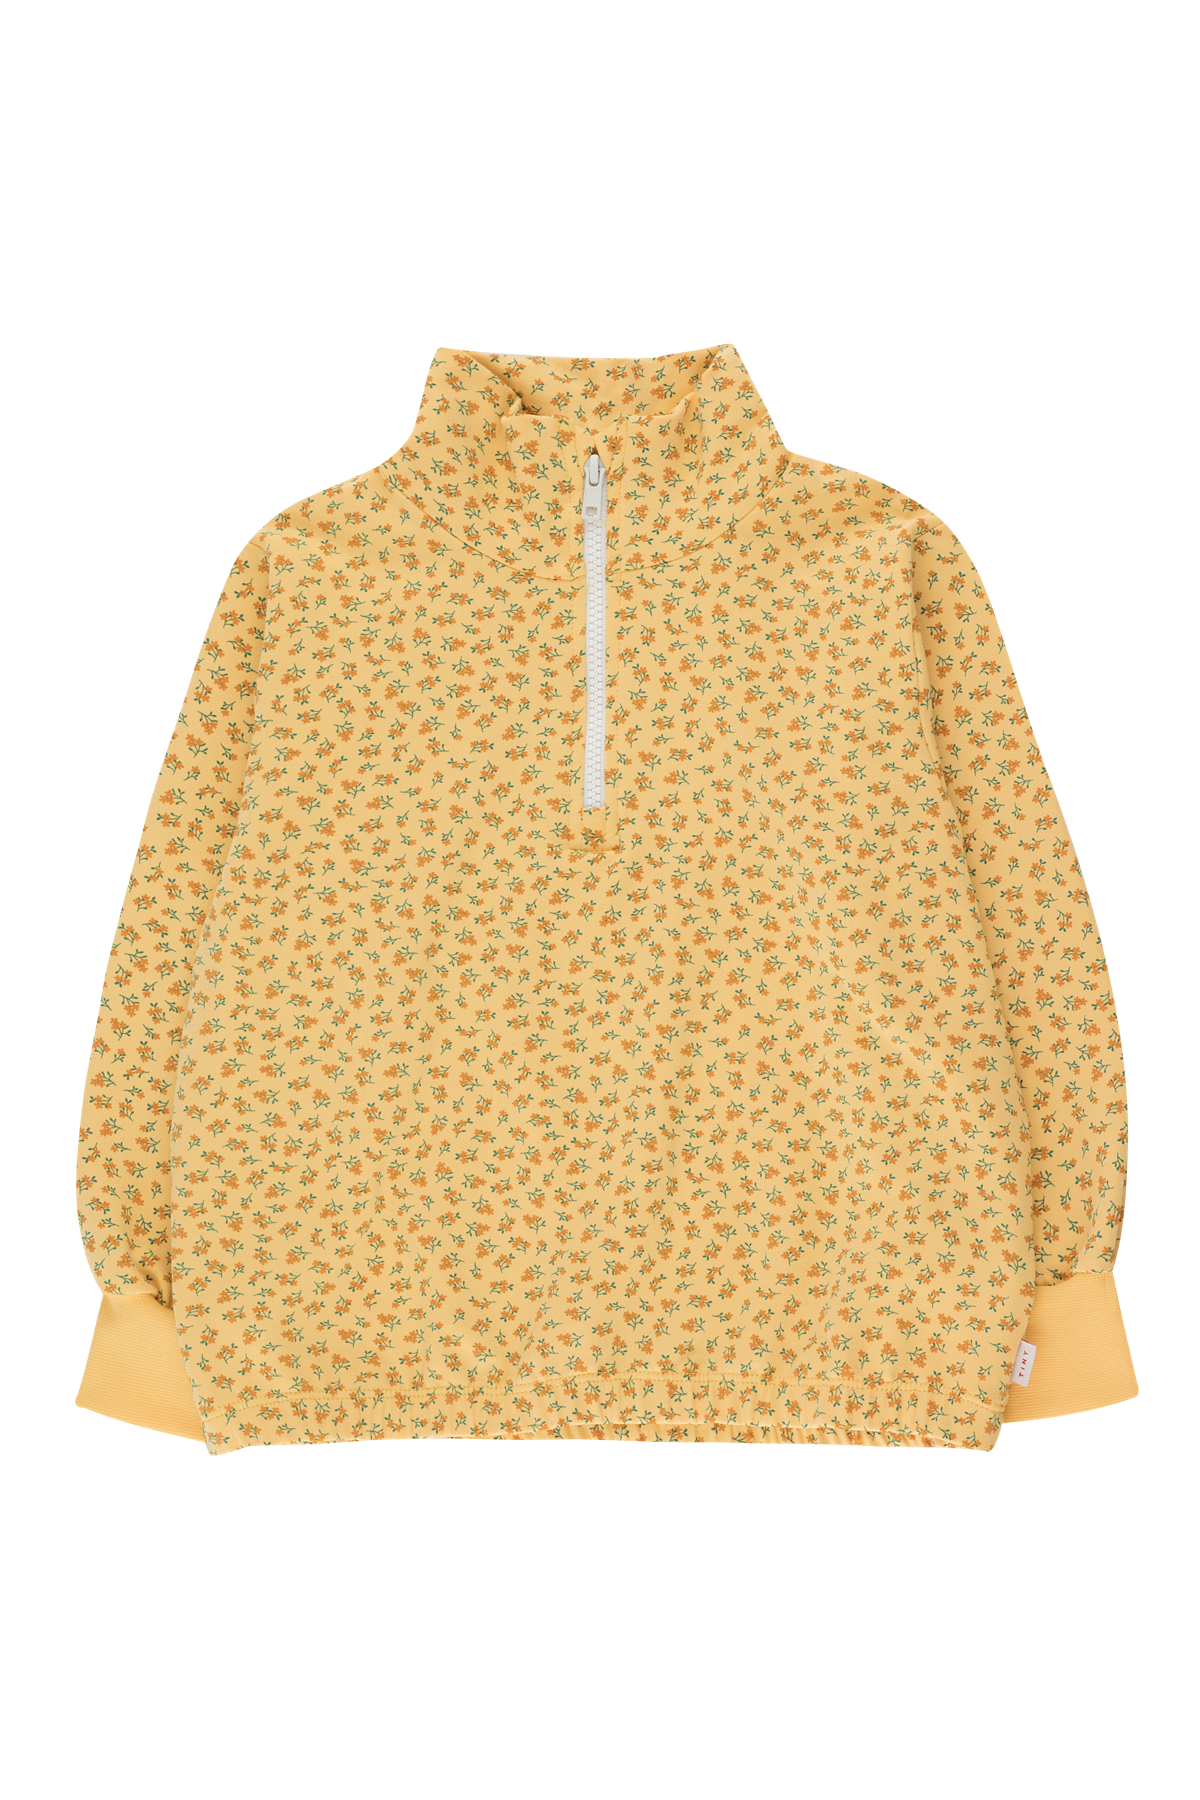 tinycottons small flowers mockneck sweatshirt yellow honey